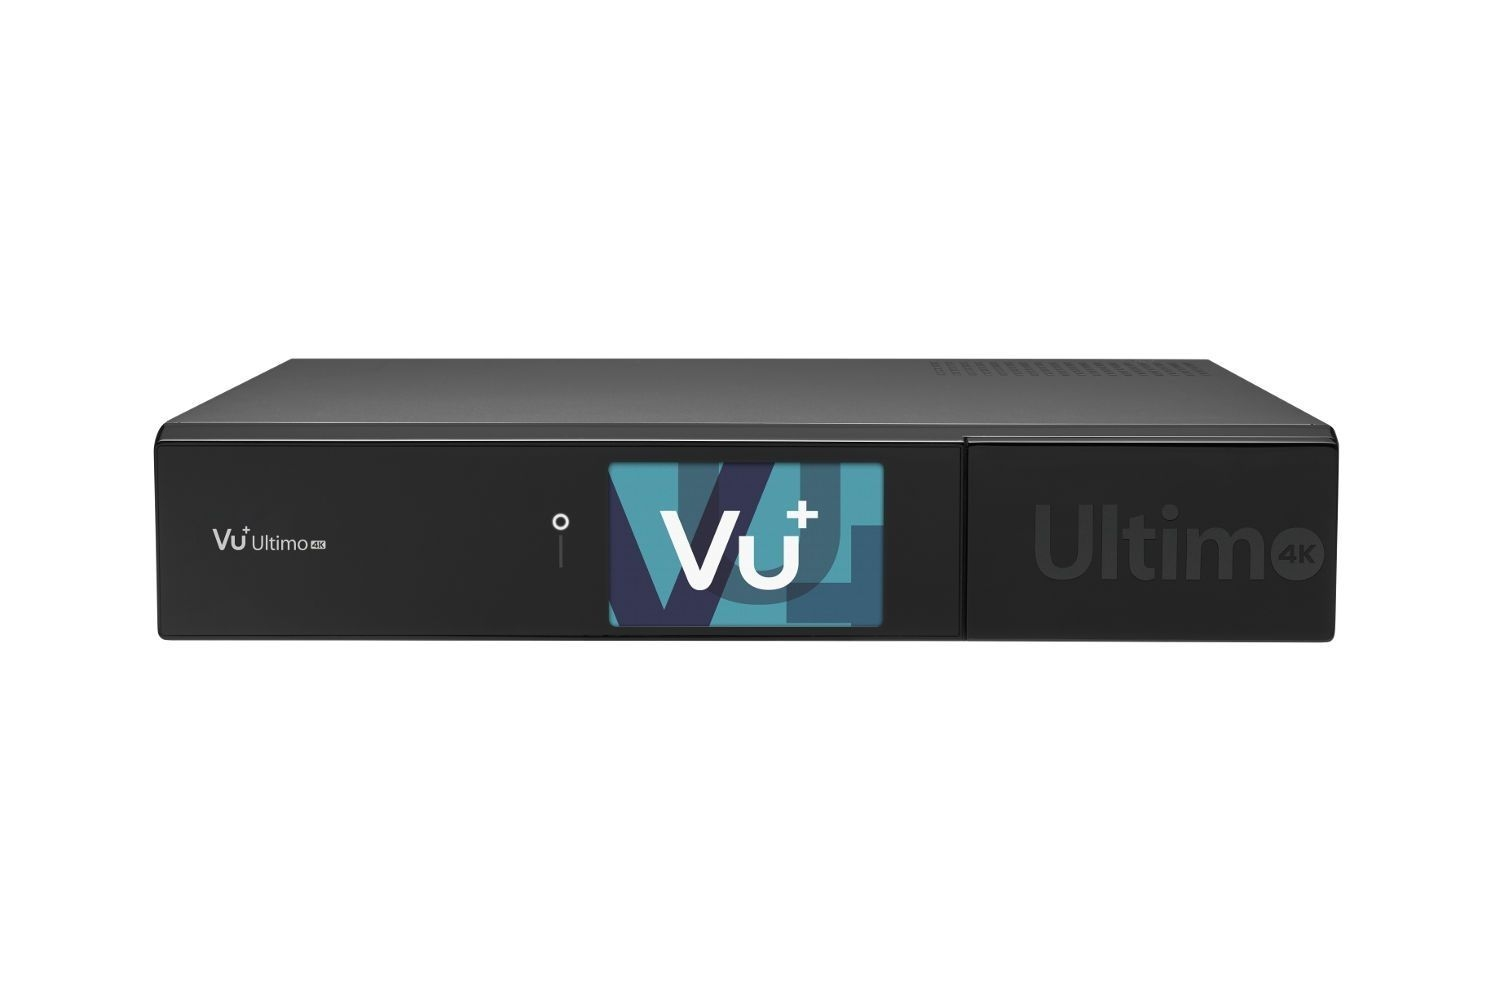 VU+ Ultimo 4K 2x DVB-C FBC / 1x DVB-C/T2 Dual Tuner PVR ready Linux Receiver UHD 2160p